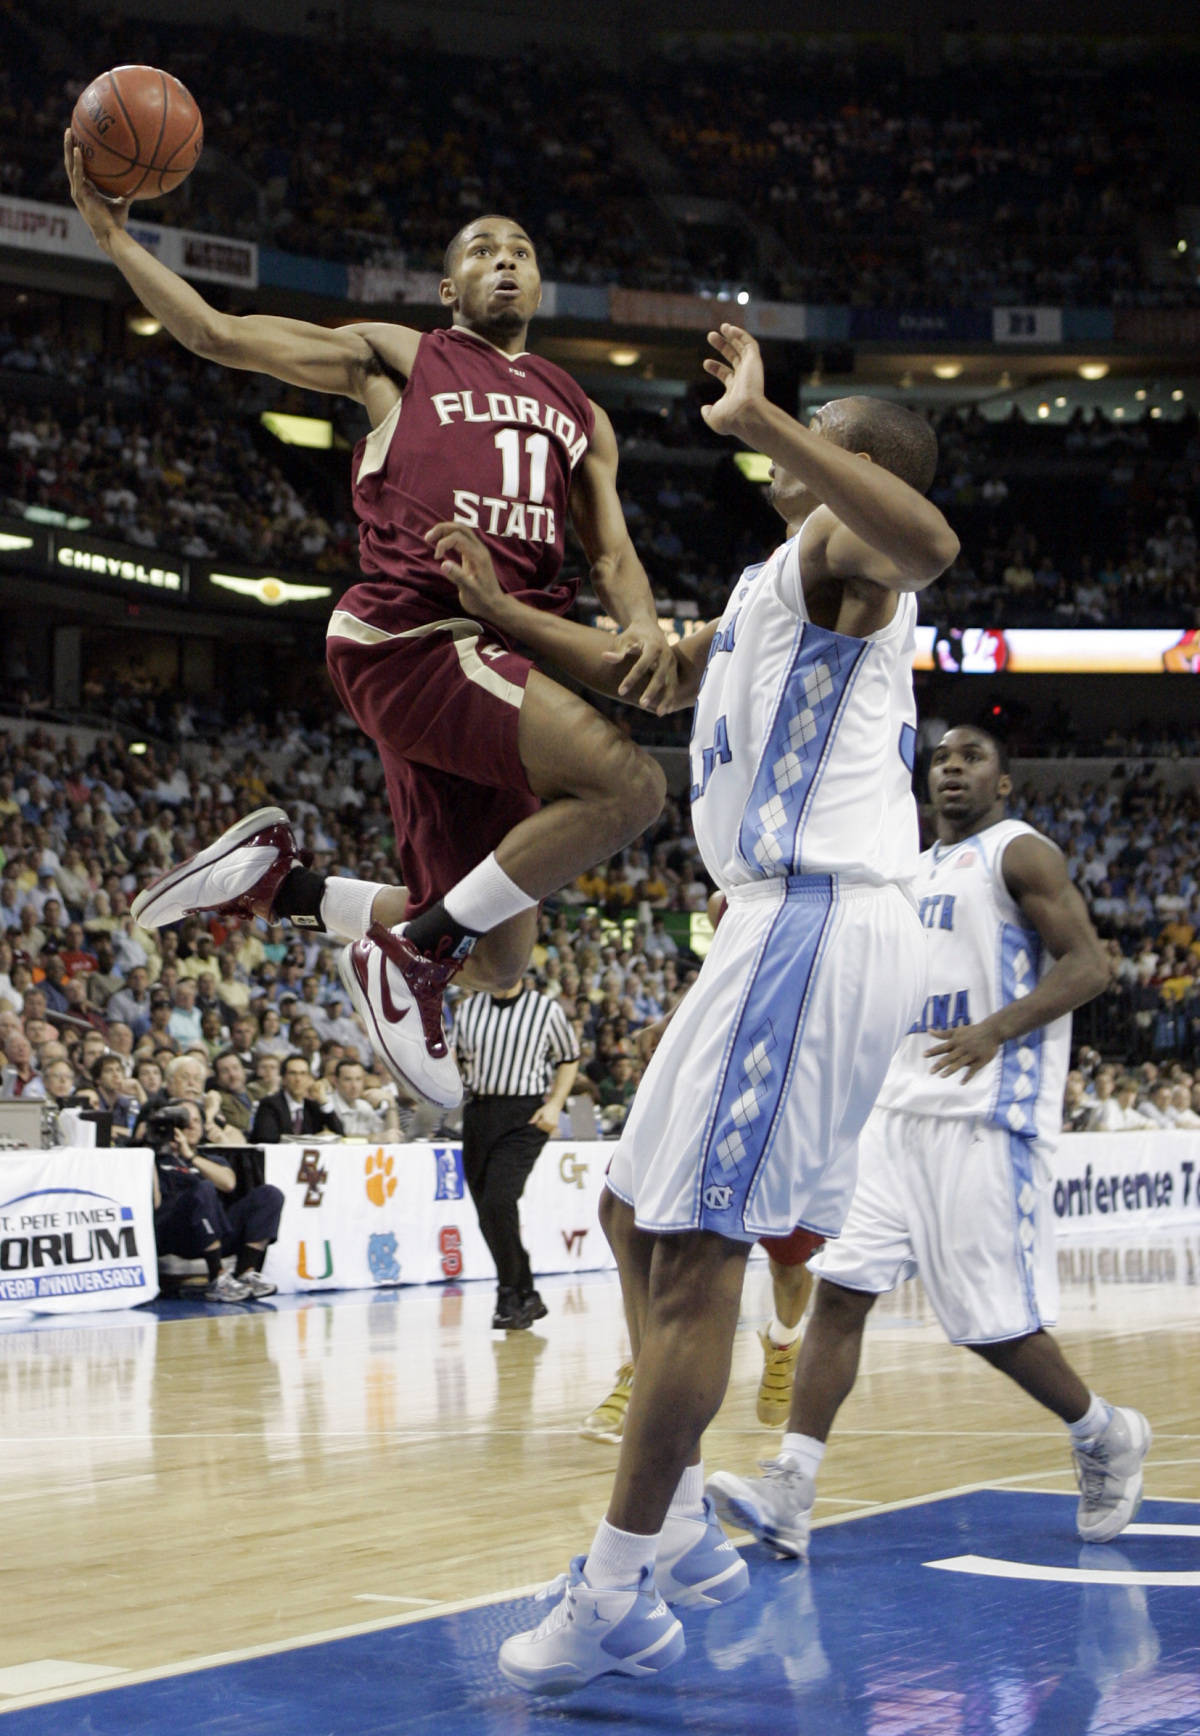 Florida State's Jerel Allen (11) leaps for a shot over North Carolina's Reyshawn Terry during a second round game of the Men's Atlantic Coast Conference basketball tournament in Tampa, Fla., Friday, March 9, 2007. (AP Photo/David J. Phillip)